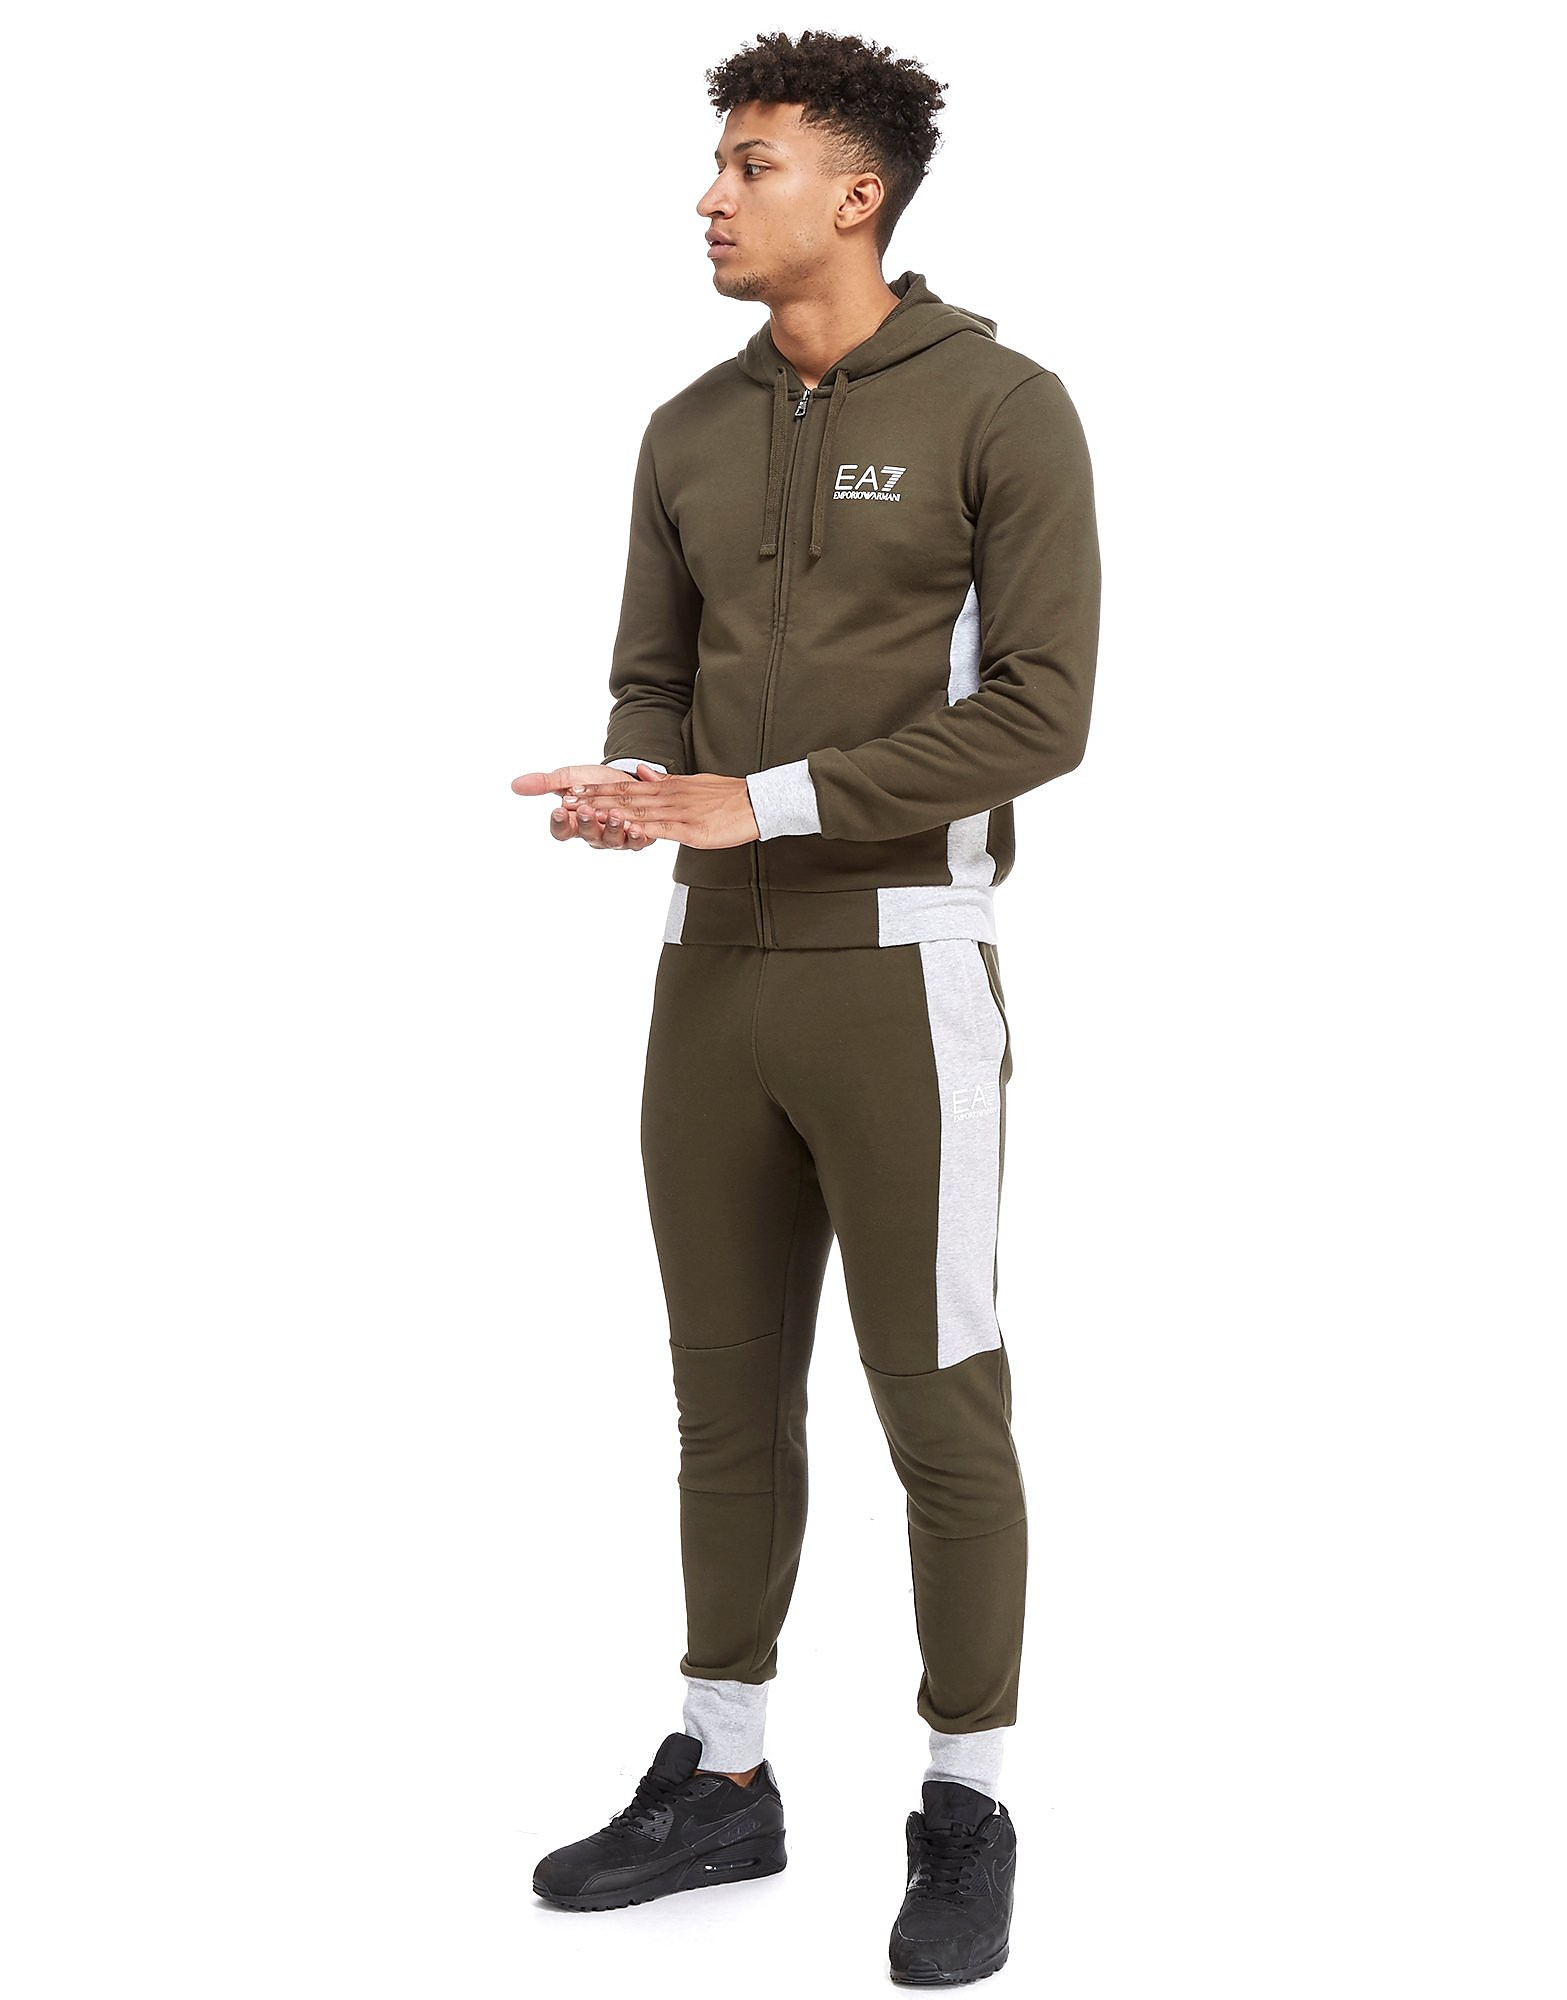 Emporio Armani EA7 Colourblock Panel Tracksuit